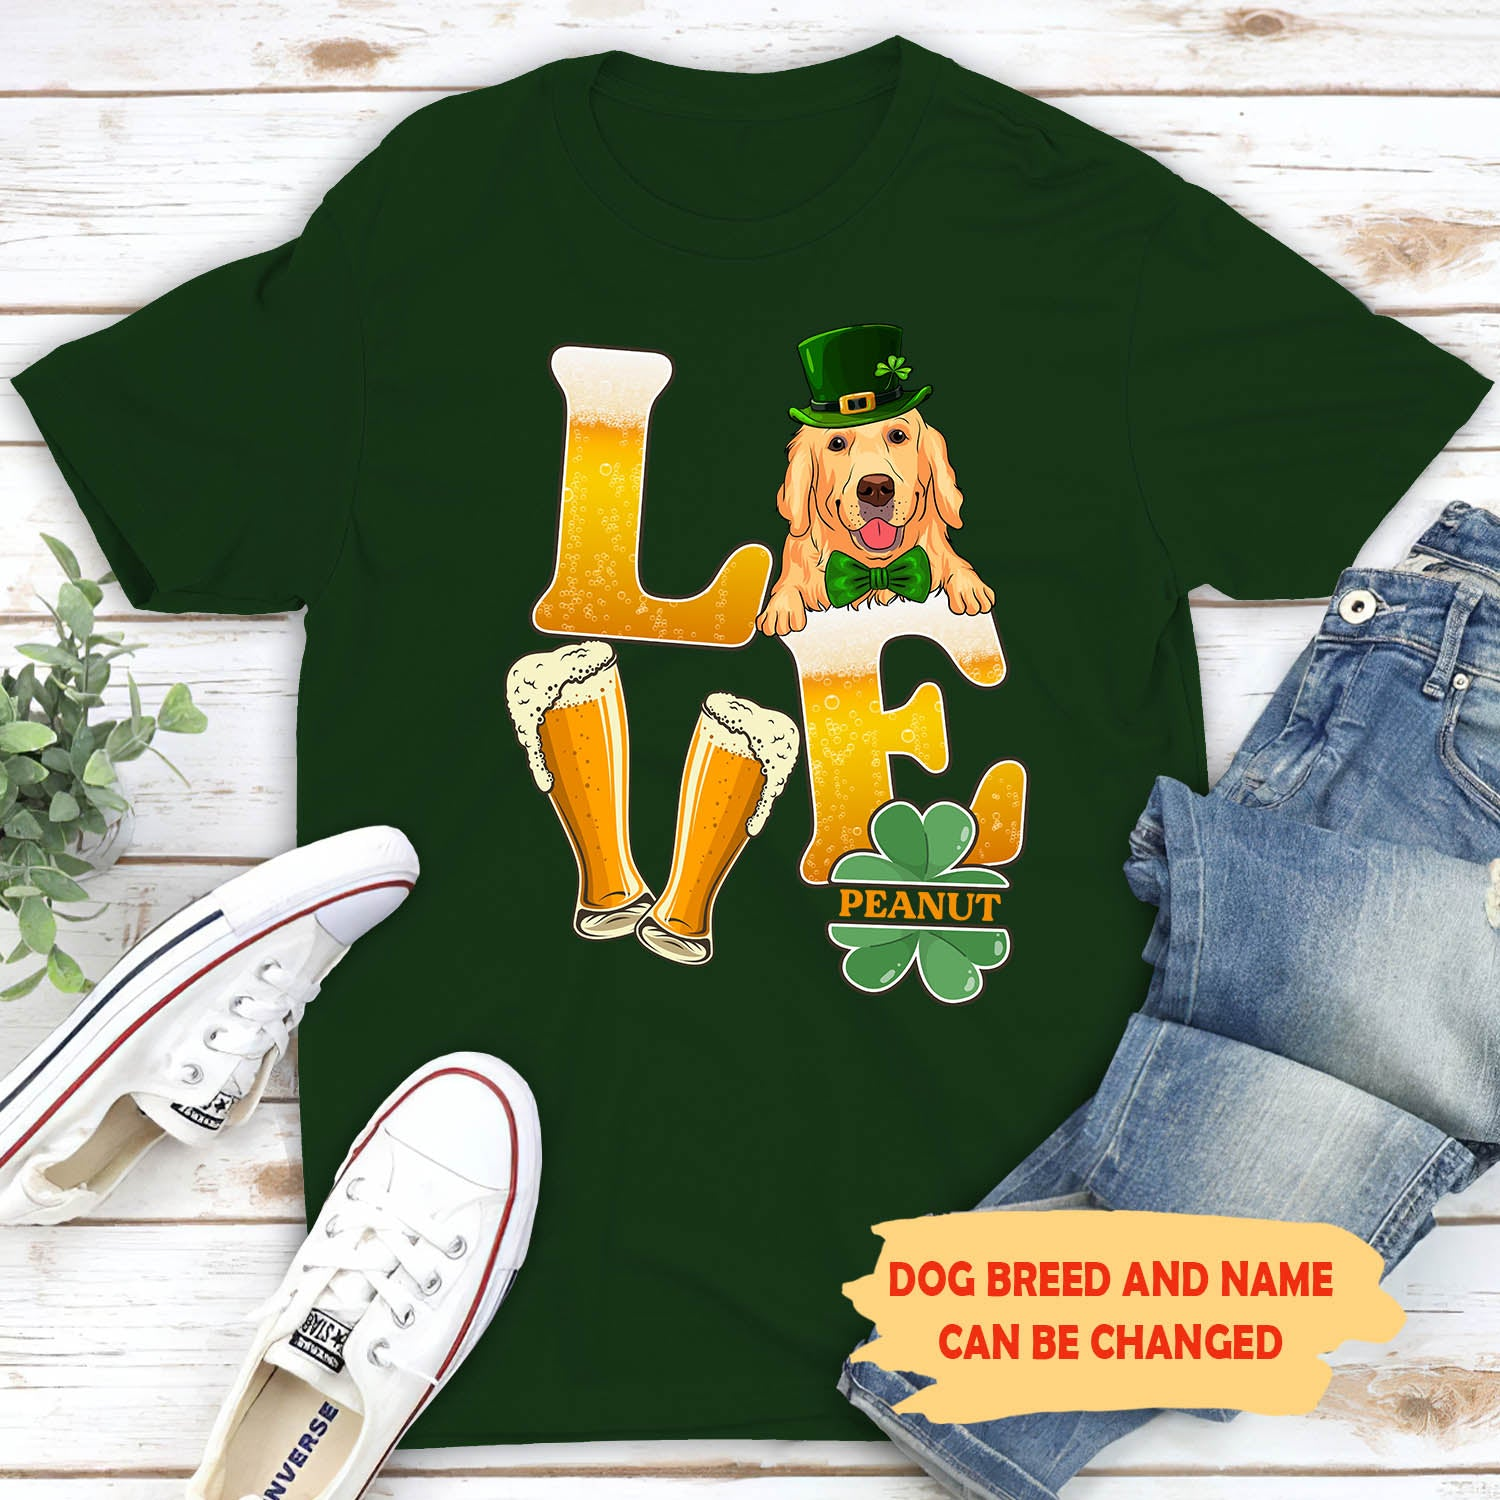 Beer Love Dog - Personalized Custom Unisex T-shirt - St. Patrick's Day Shirt